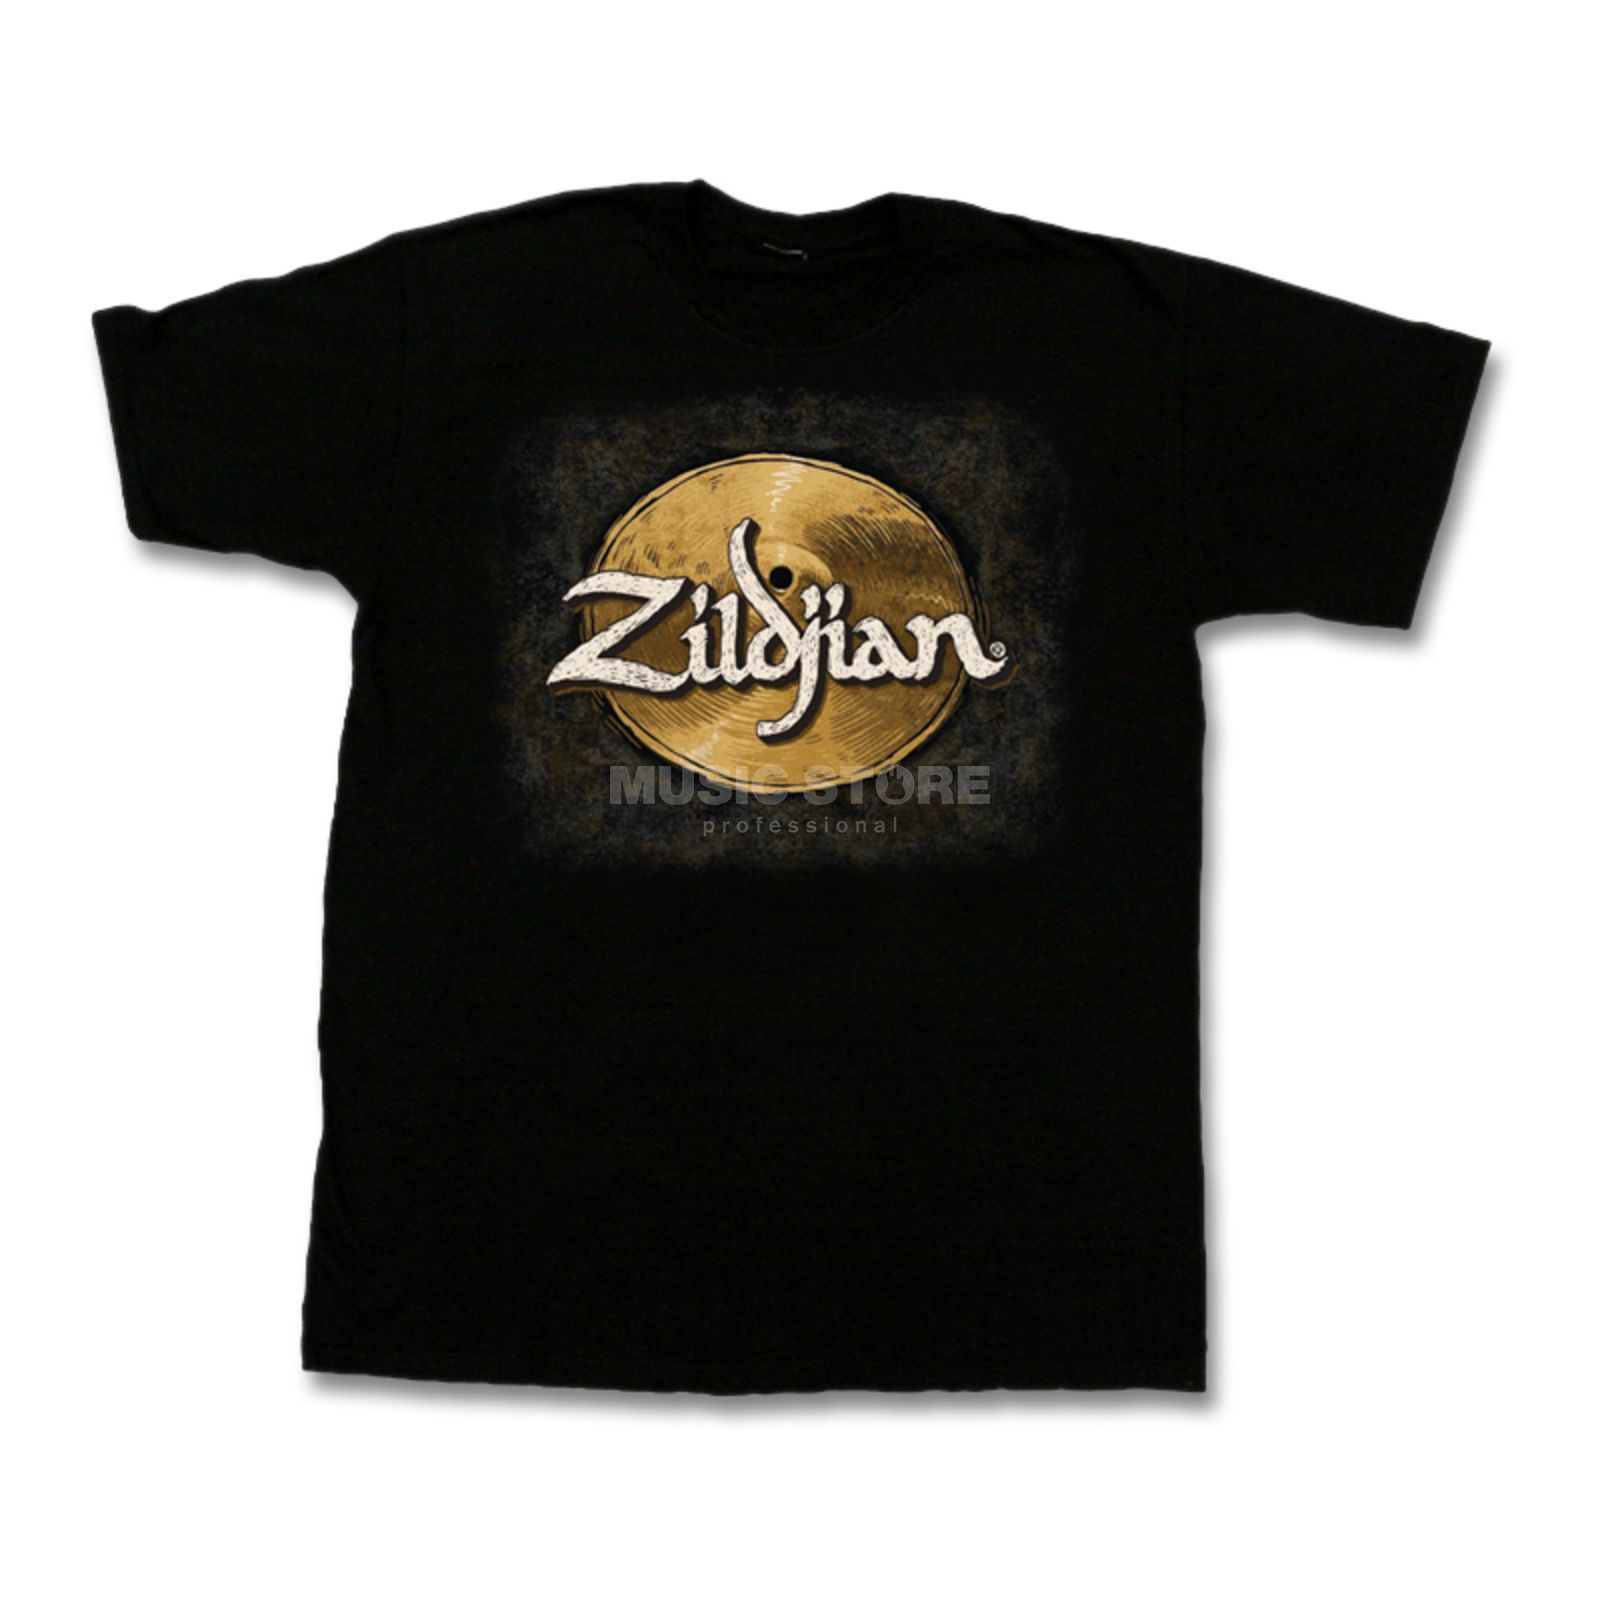 Zildjian T-Shirt Hand-Drawn Black, Extra Large Product Image